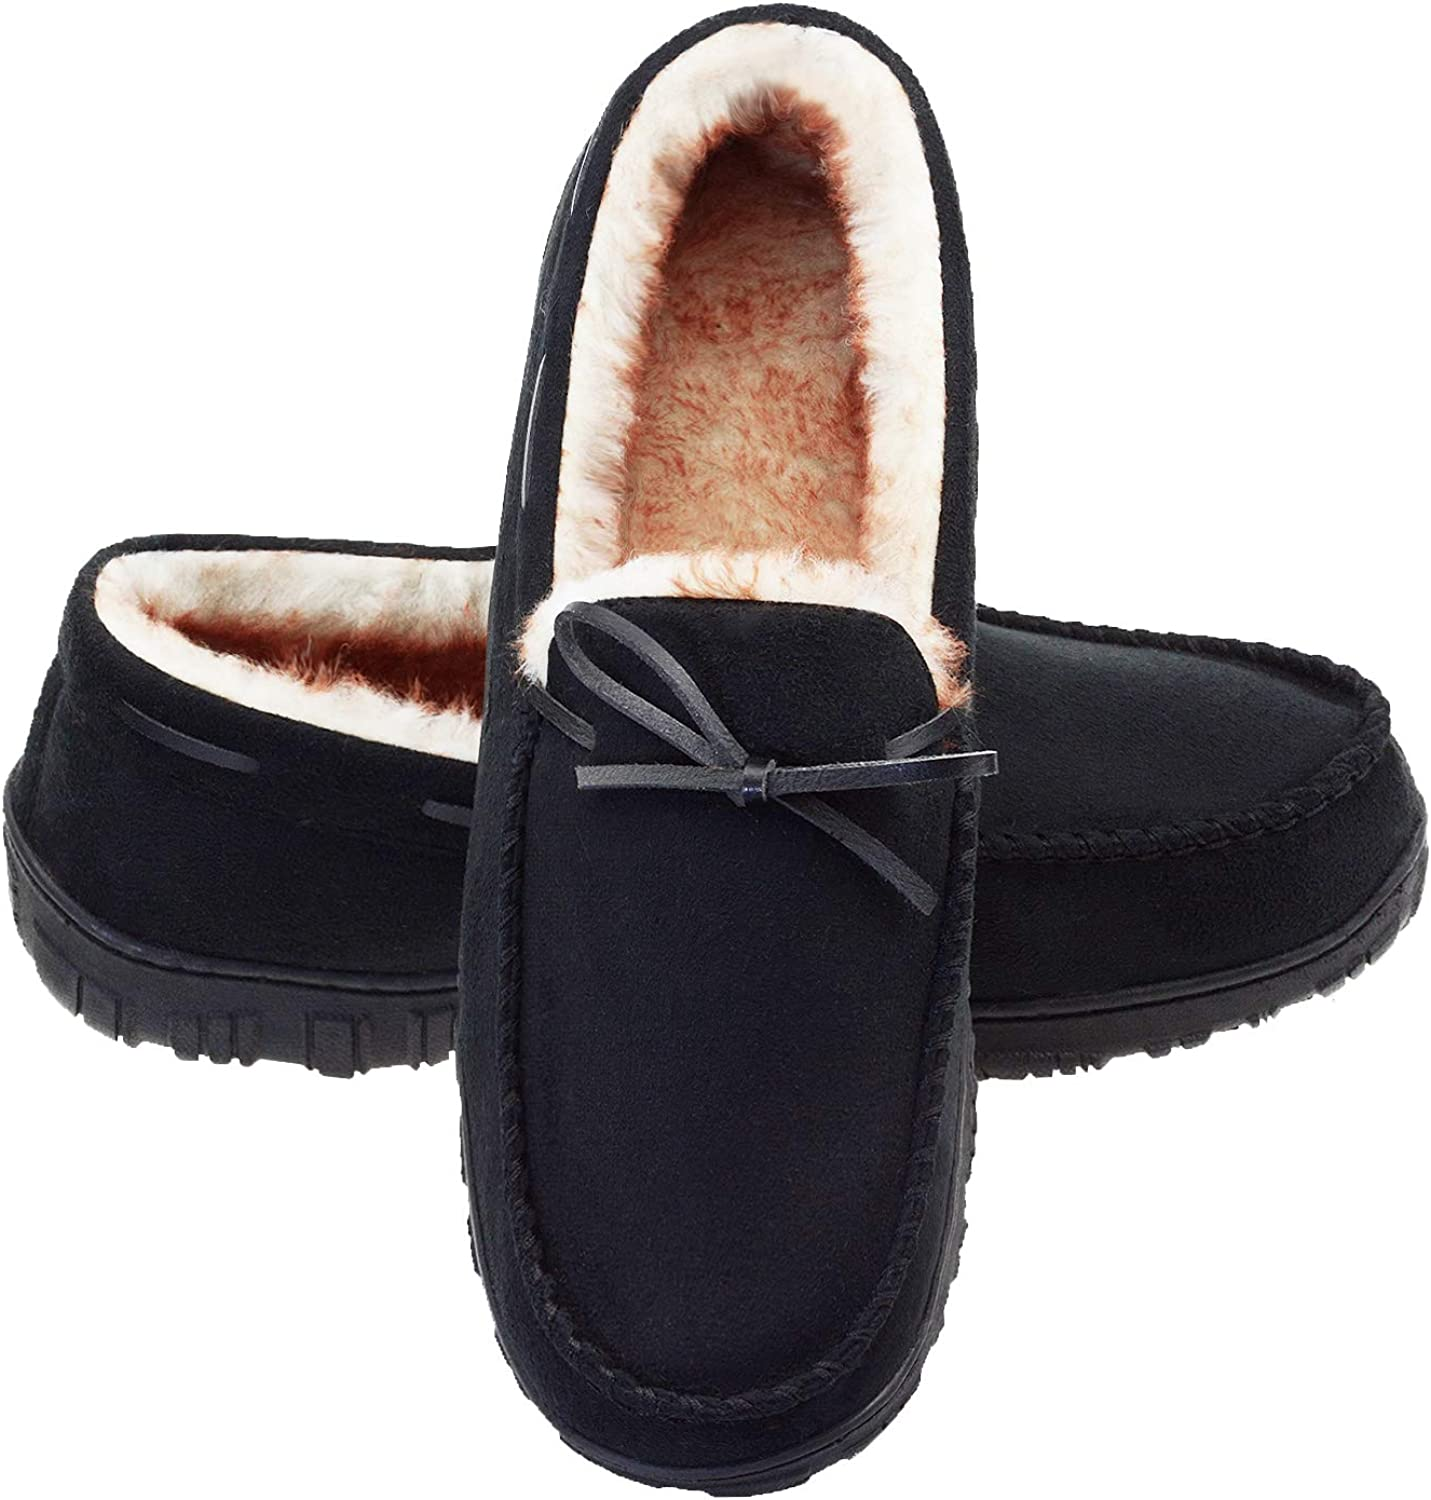 Fees free LA Sale price PLAGE Mens Slippers Moccasin for Plush Outdoor Indoor Men Lin